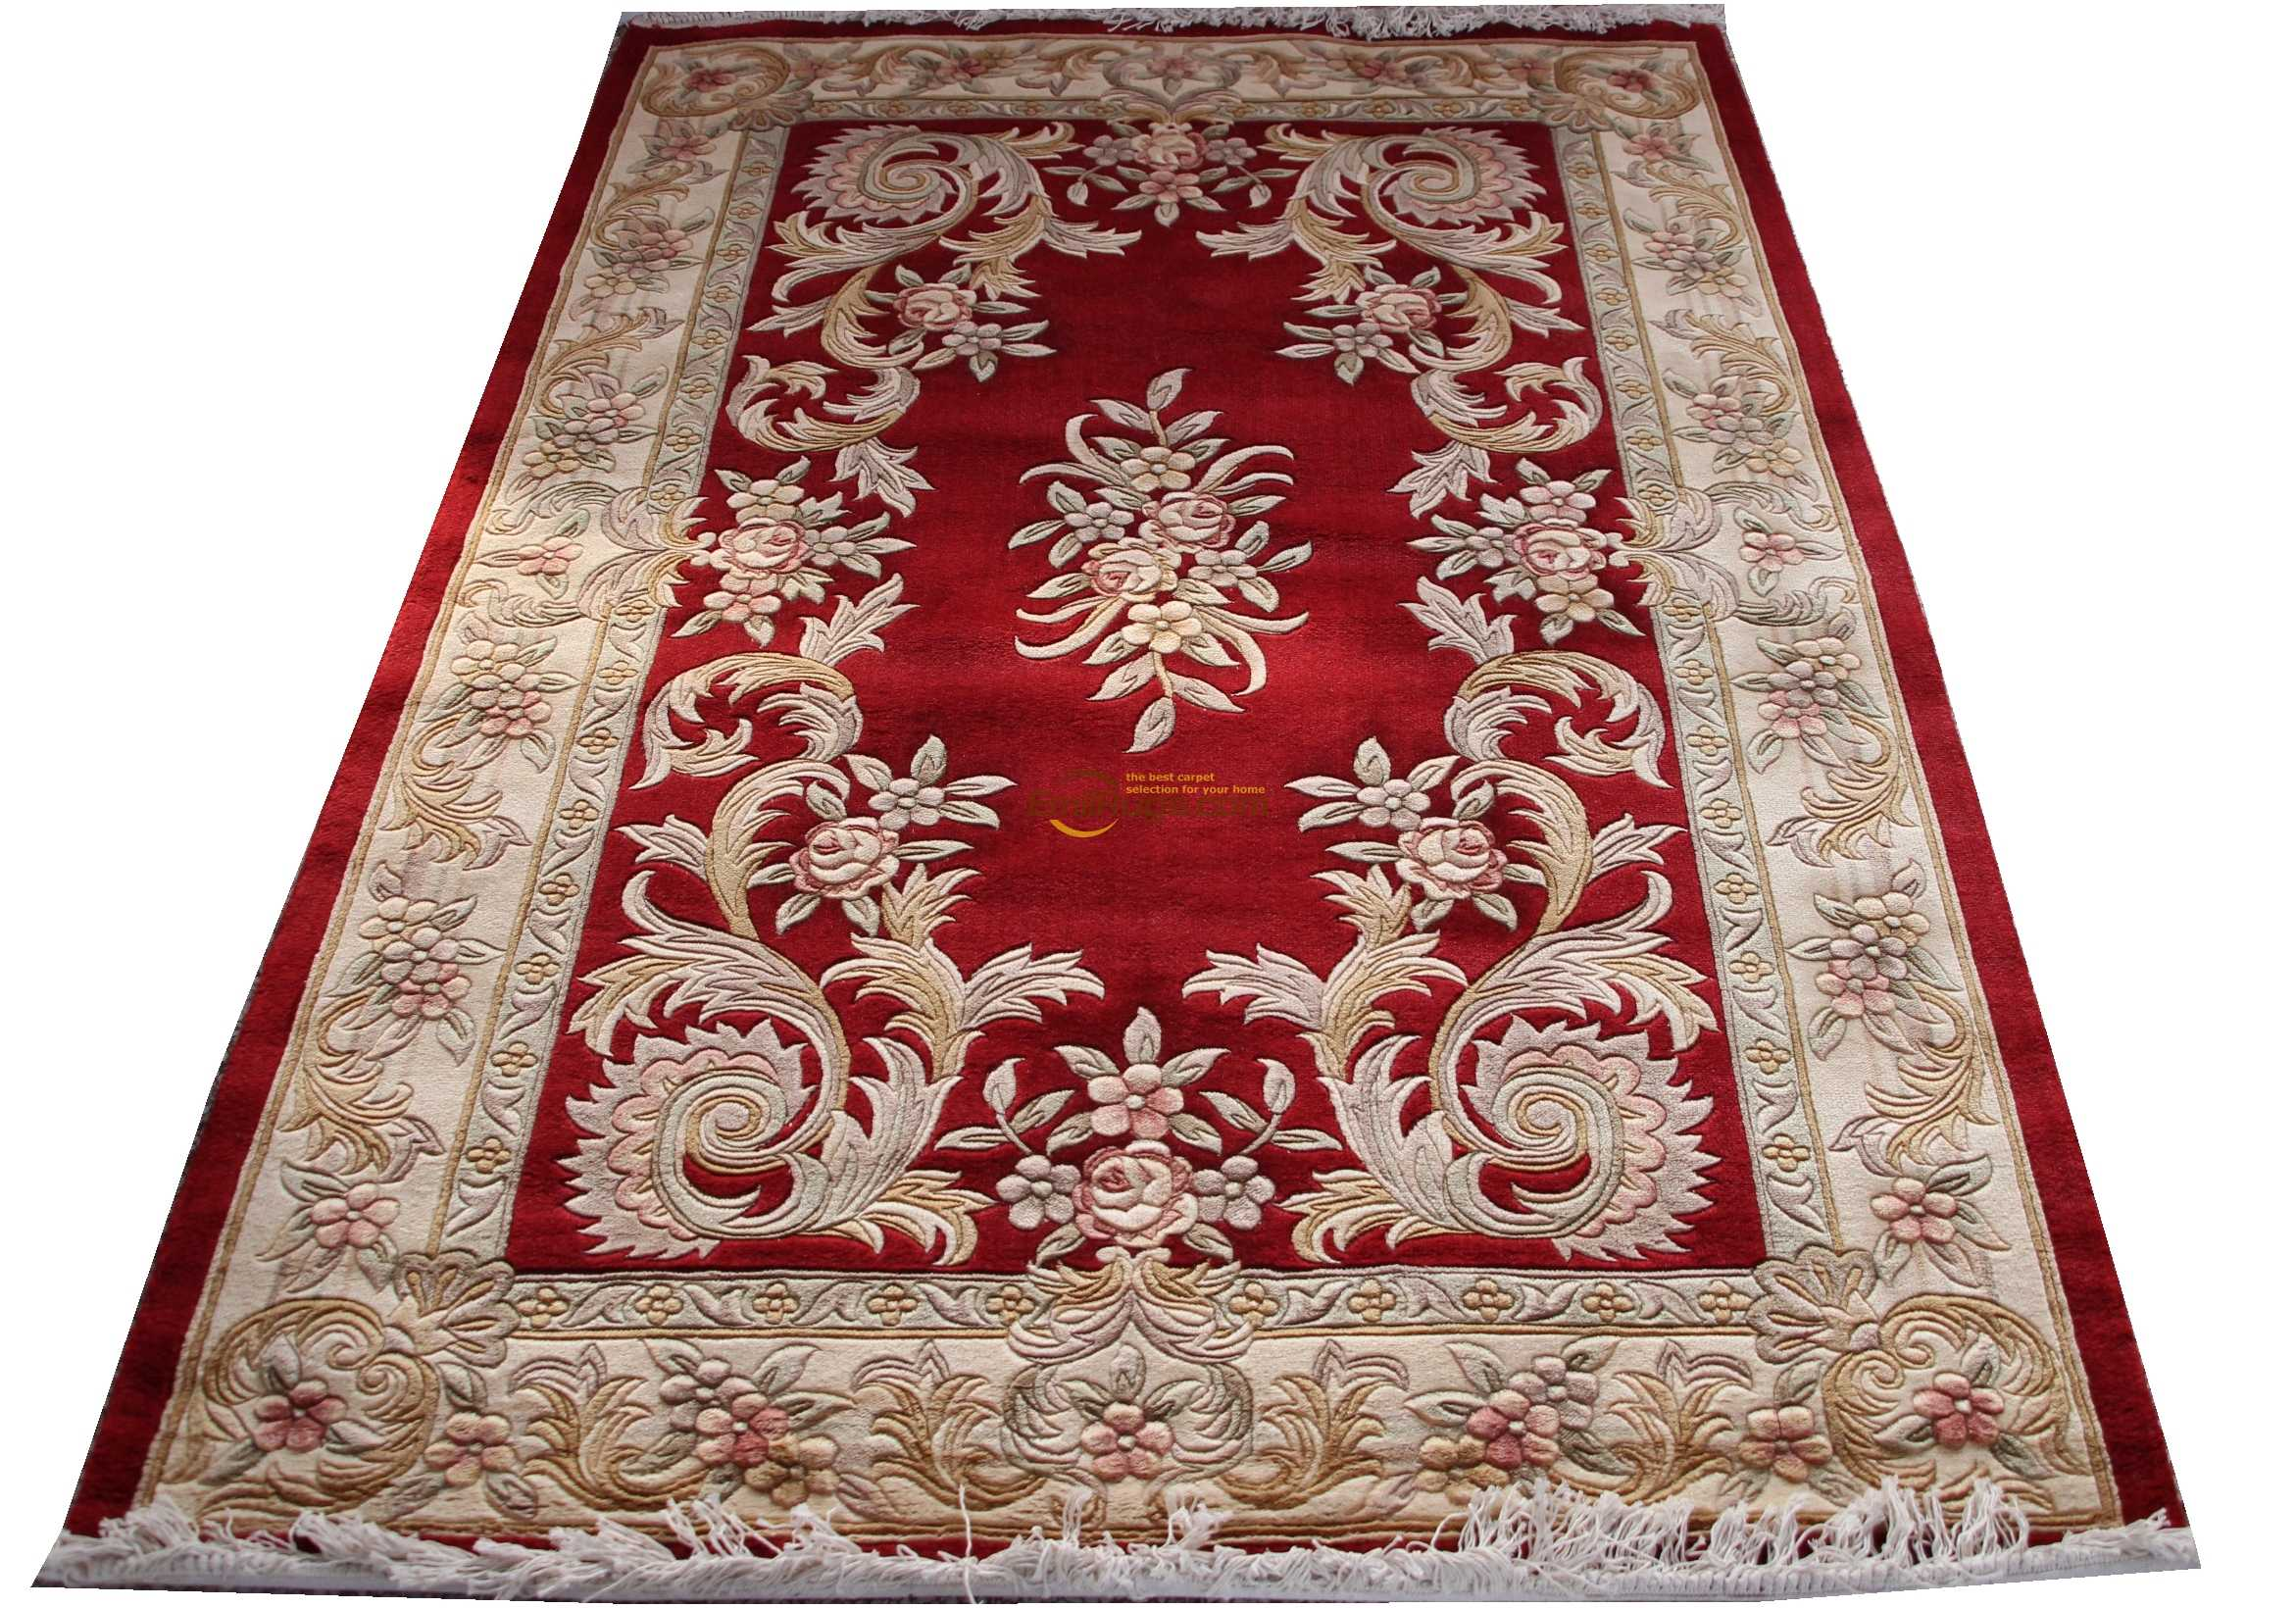 Thick And Plush European Savonnerie Rug Antique Chinese Hand-made Wool Wall Art Geometric Antique Wool Rug Carpet